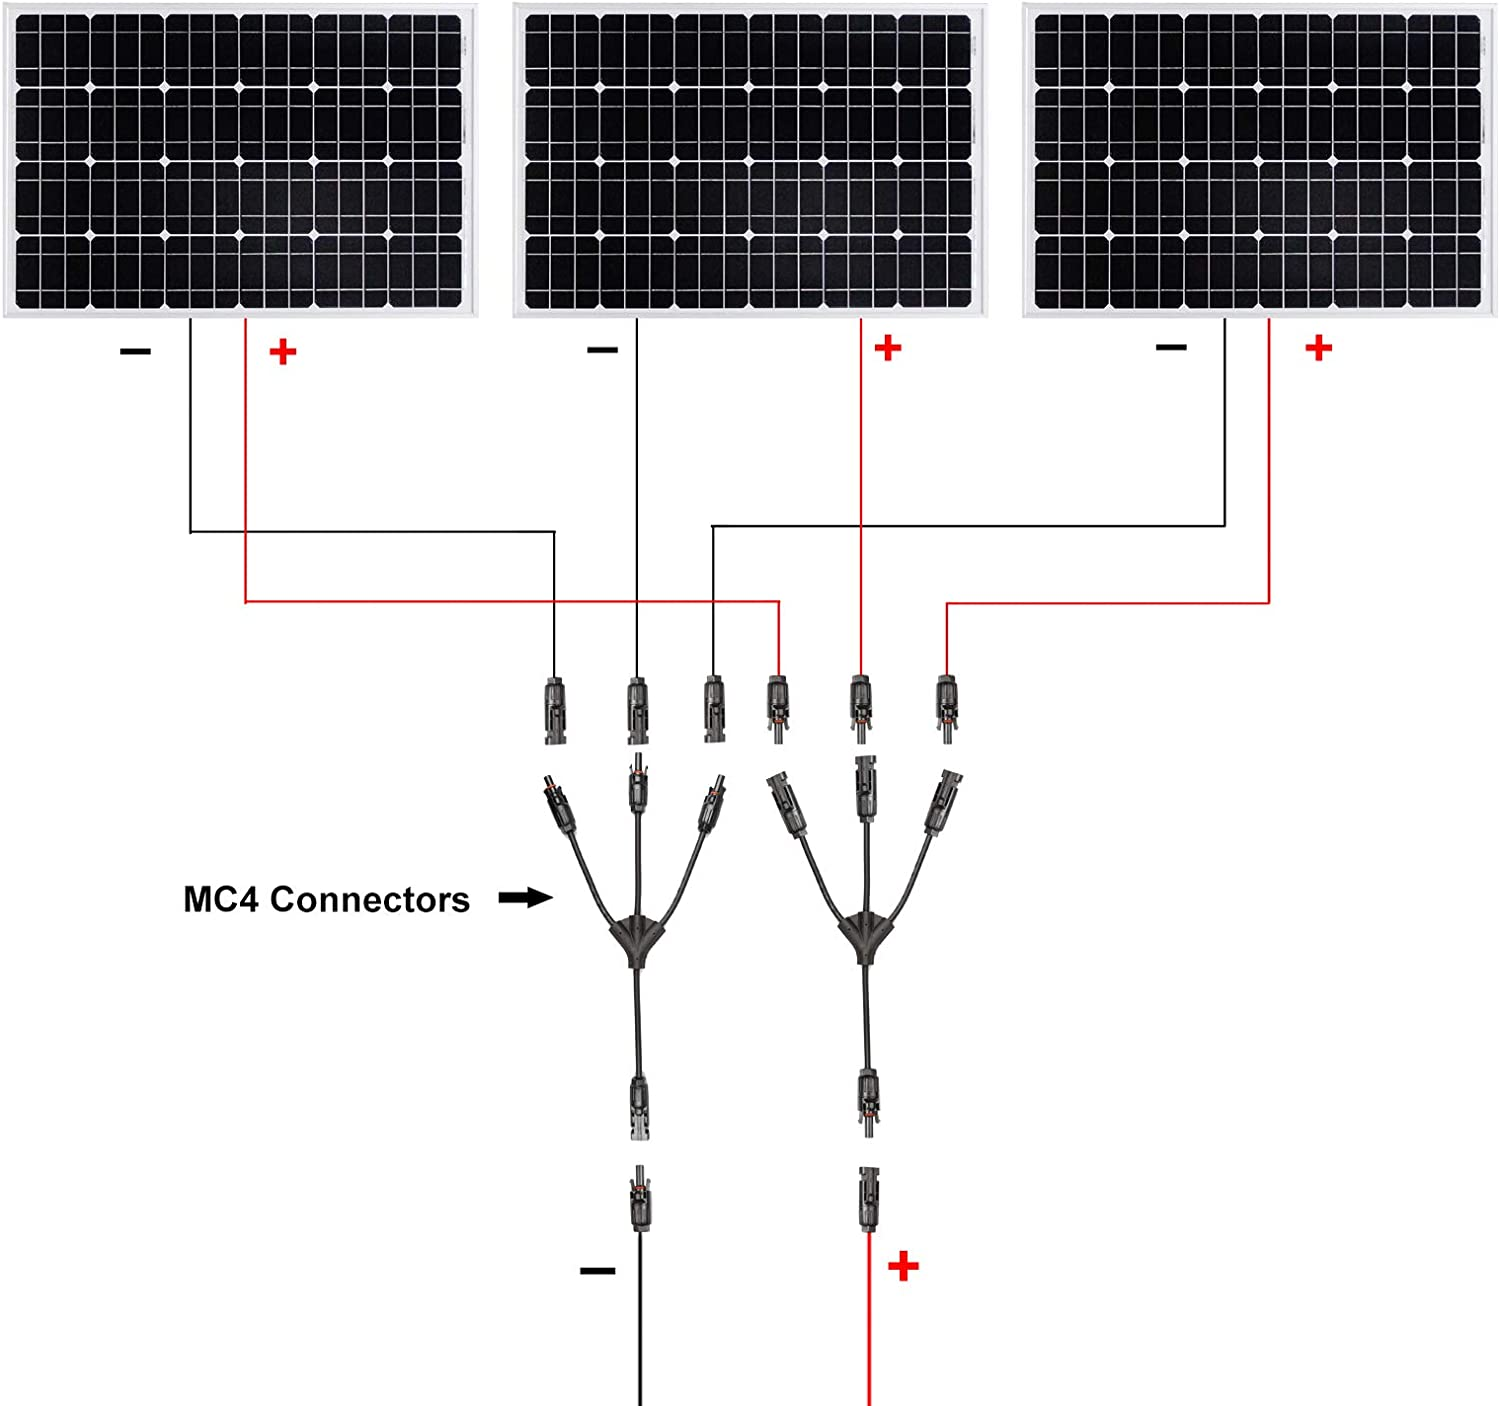 eoere 8 Pairs MC4 Splitter Connectors Cable Solar Panel Y Branch Coupler Combiner Wires T Splitter Parallel Adapter 30A 1 Male to 3 Female and 1 Female to 3 Male TUV//UL IP68 PPO